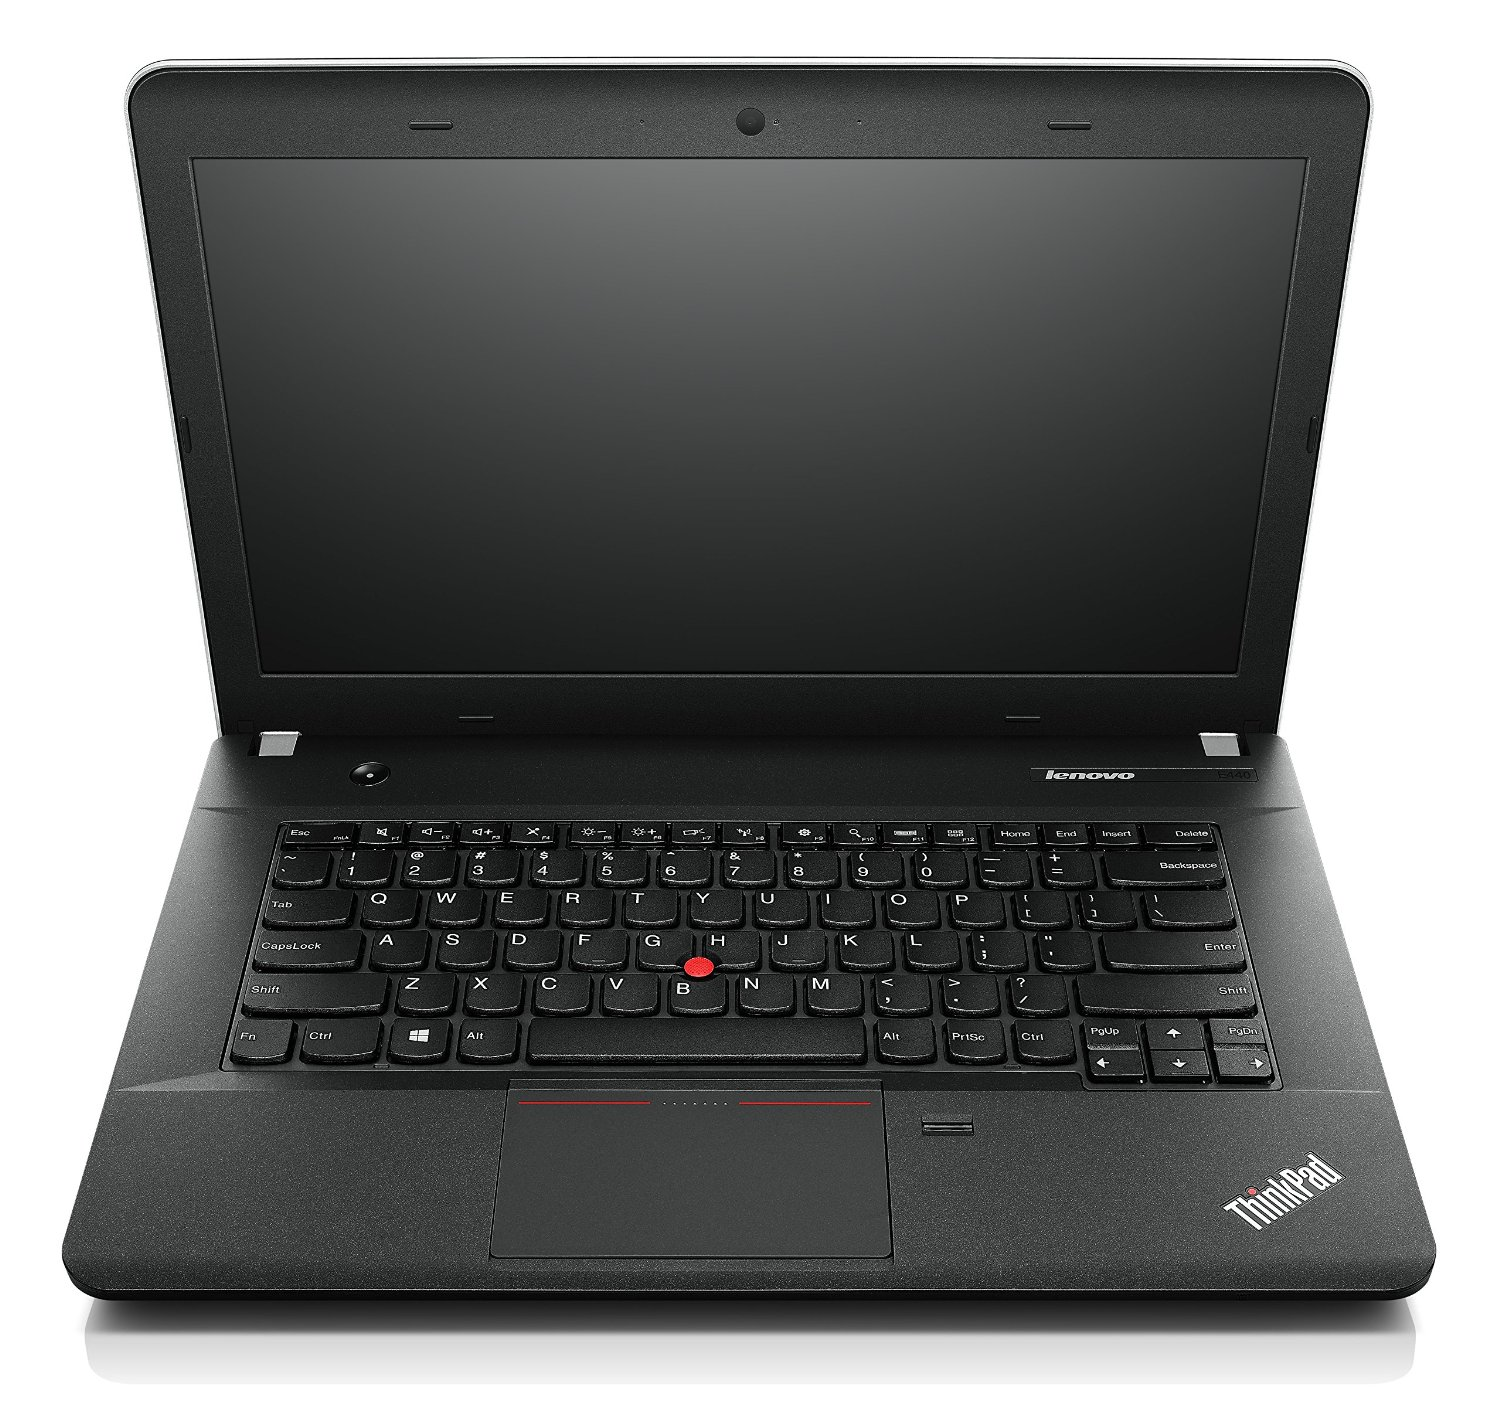 Lenovo Thinkpad E440 20C5004YUS 14-Inch Laptop